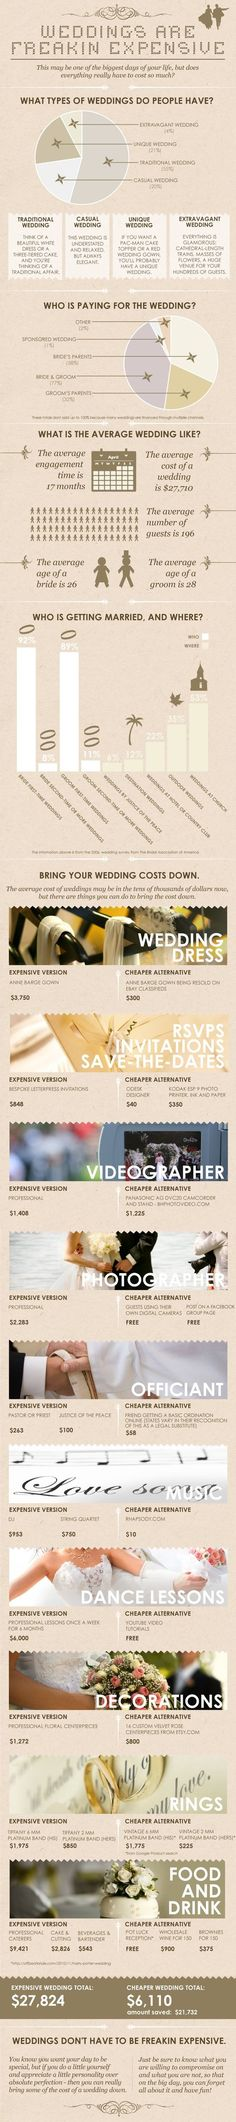 SOME of these i like and some i do NOT Wedding Bells without the Bills – How to Cut Wedding Costs